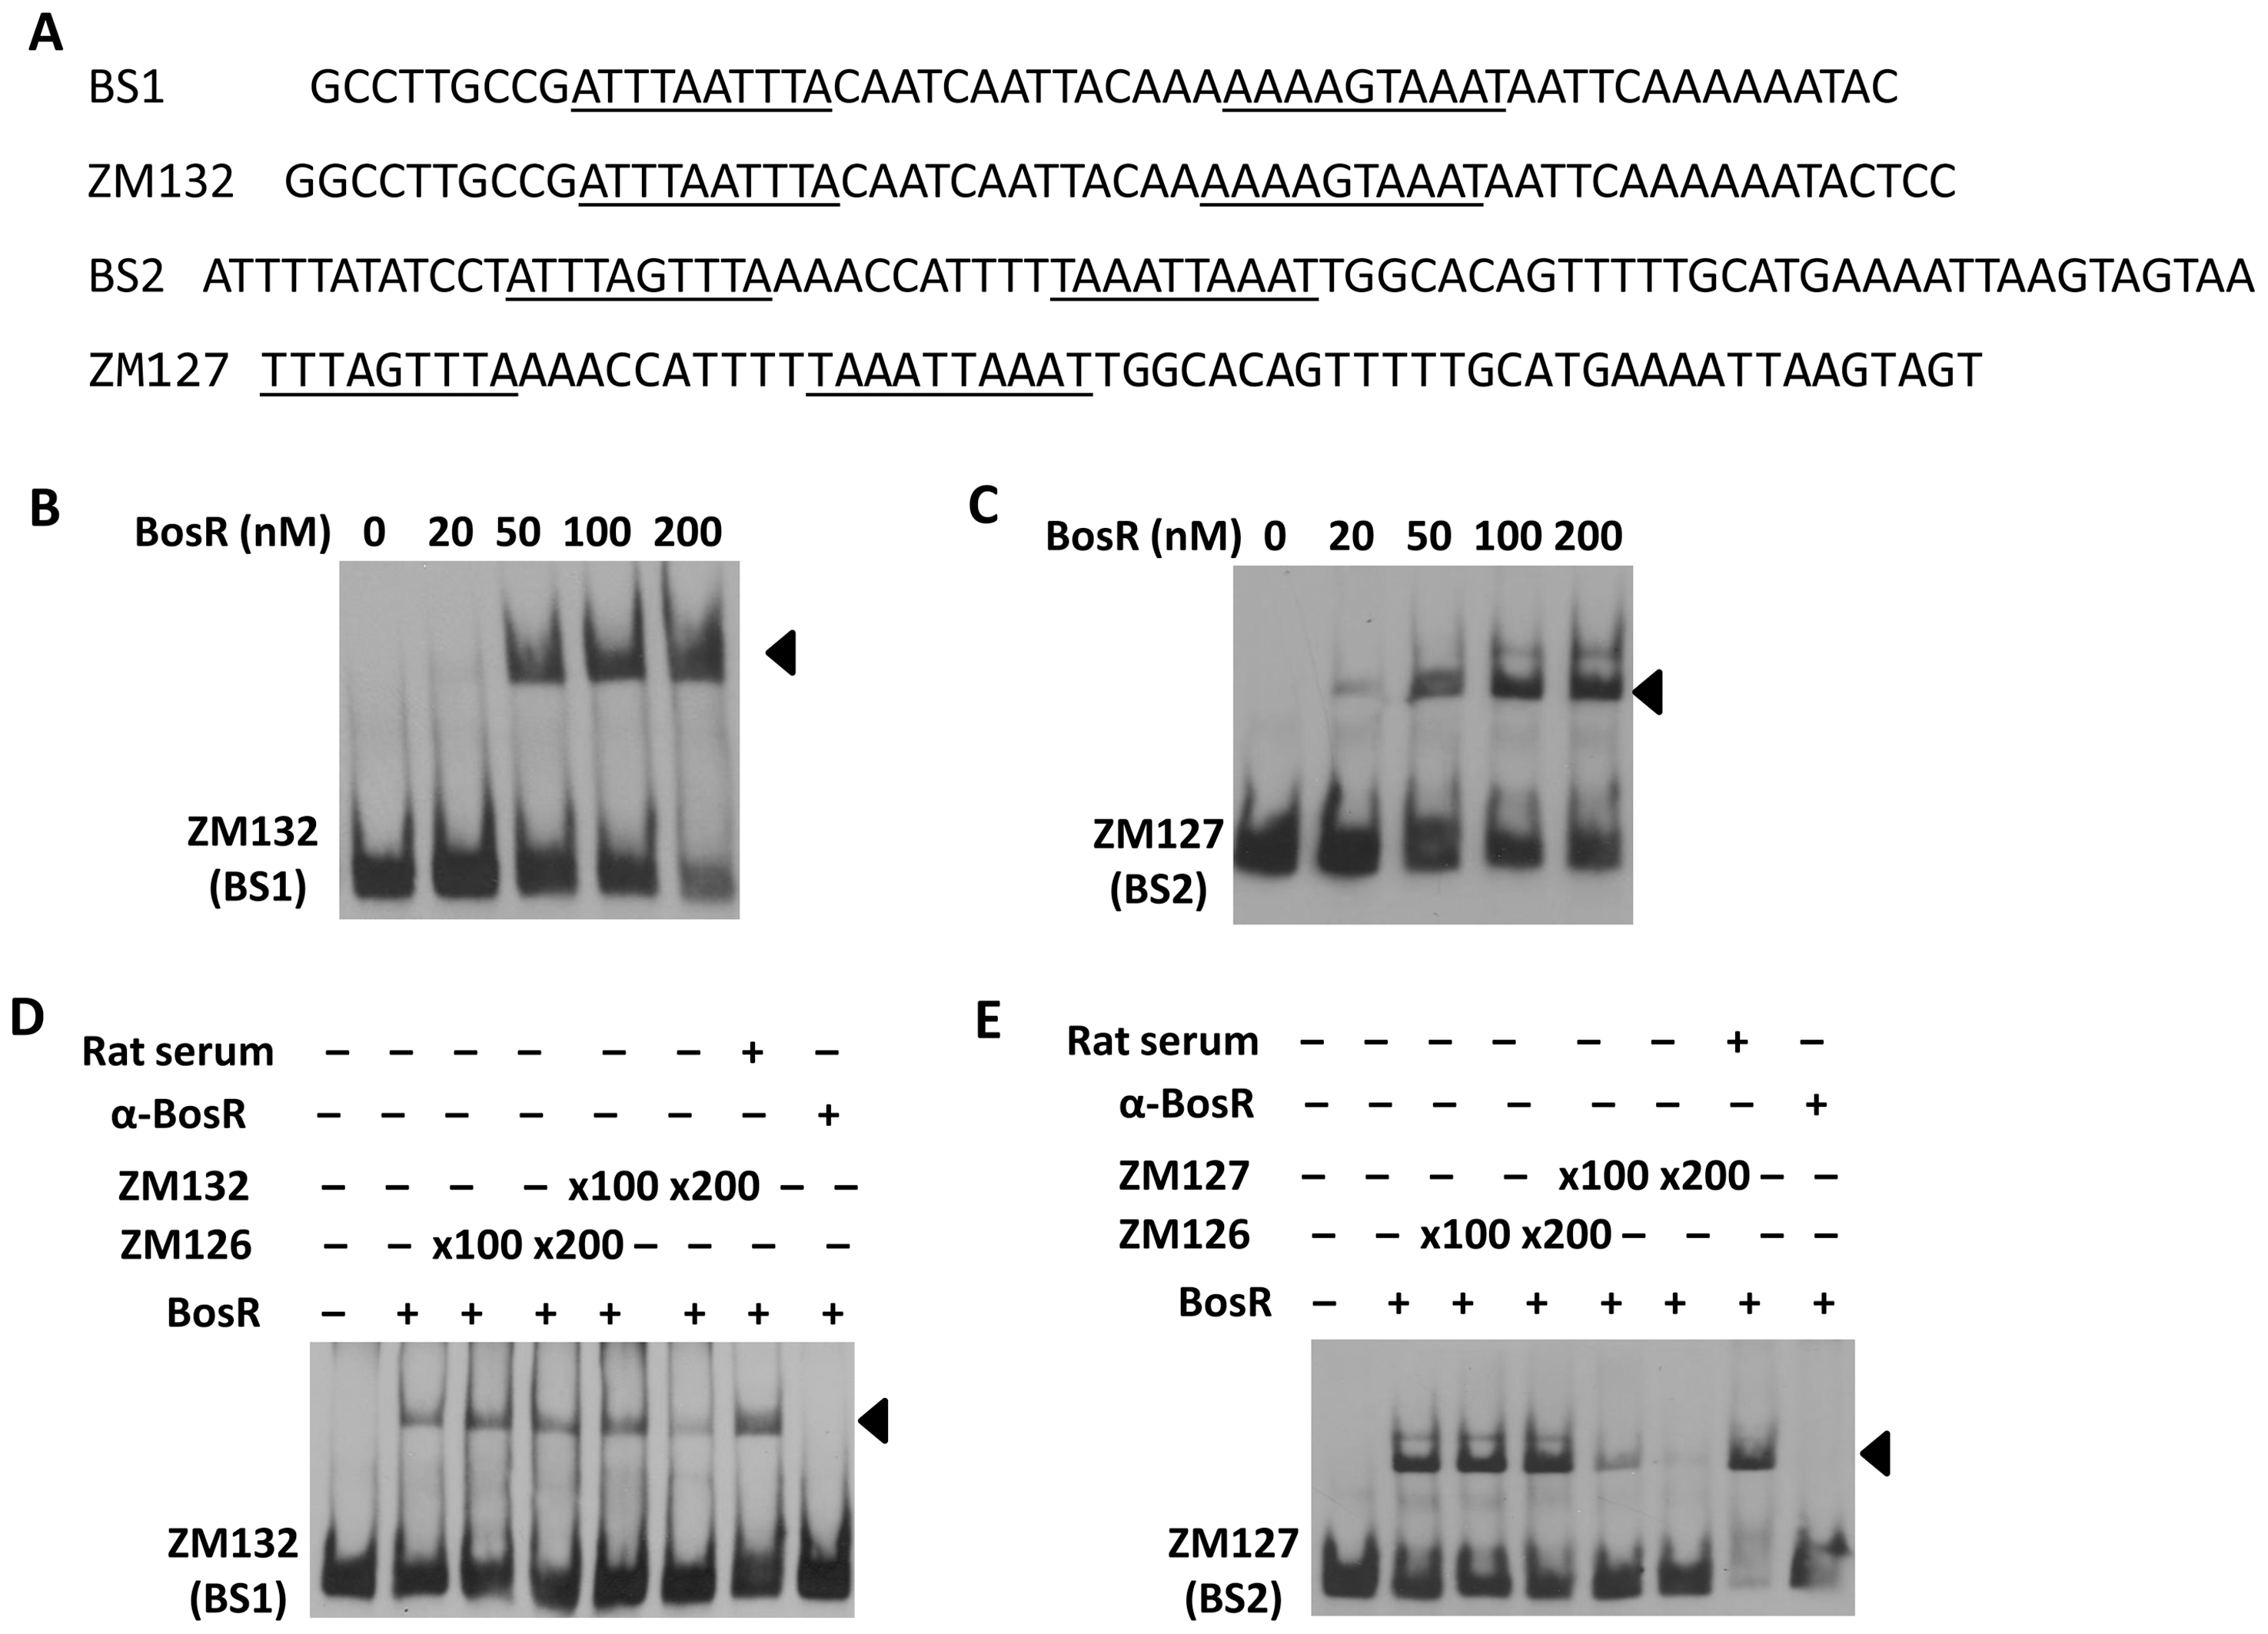 Binding of BosR to various probes containing the DNase-I protected regions.